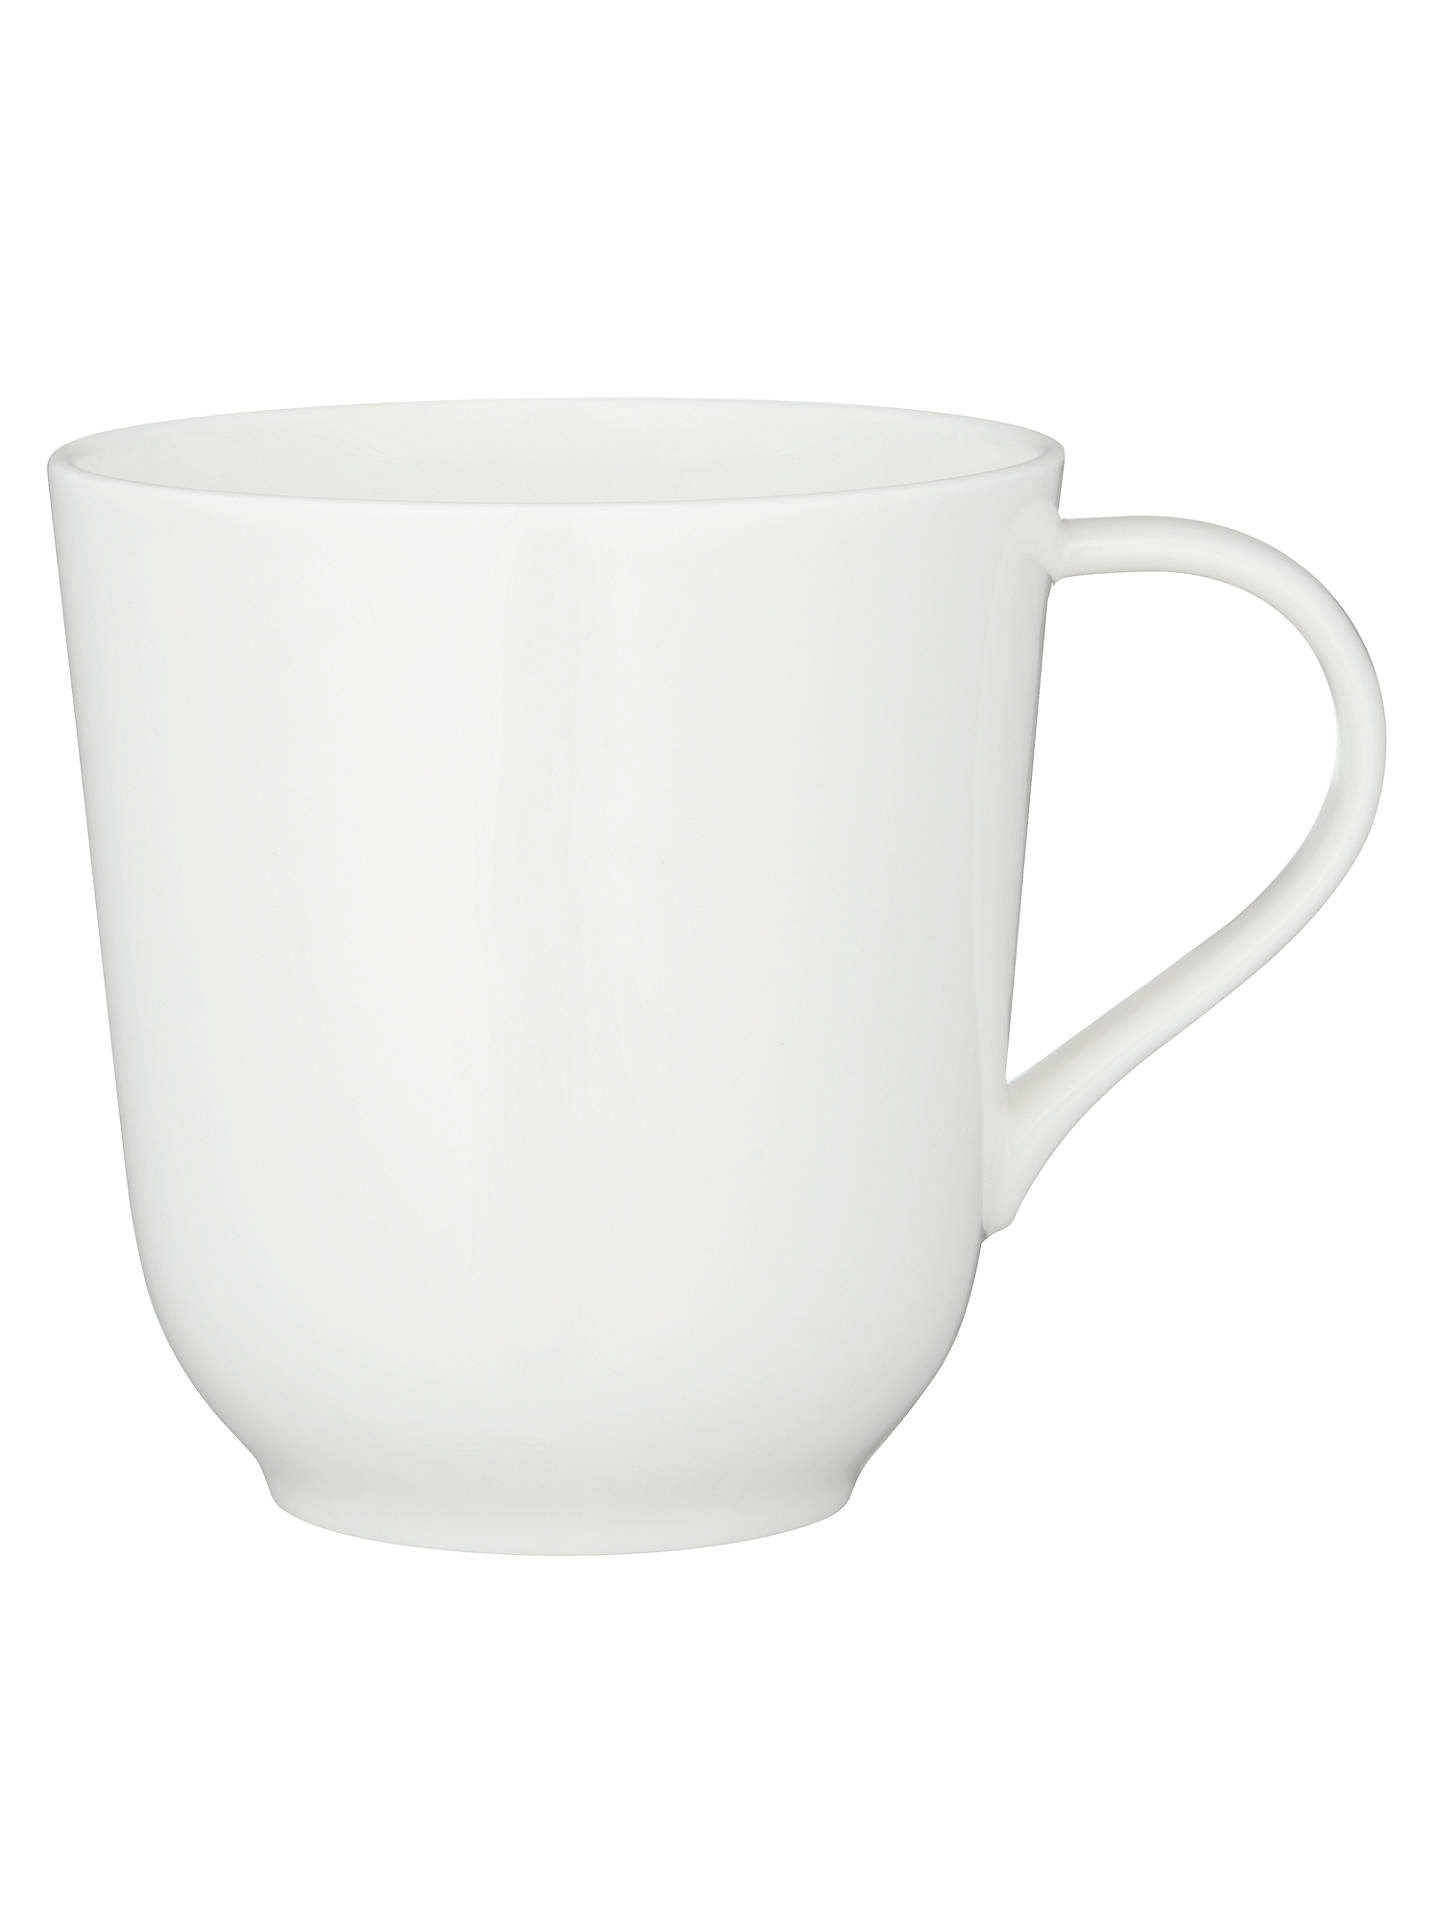 Buy John Lewis & Partners Contour Bone China Mug, White, 400ml Online at johnlewis.com